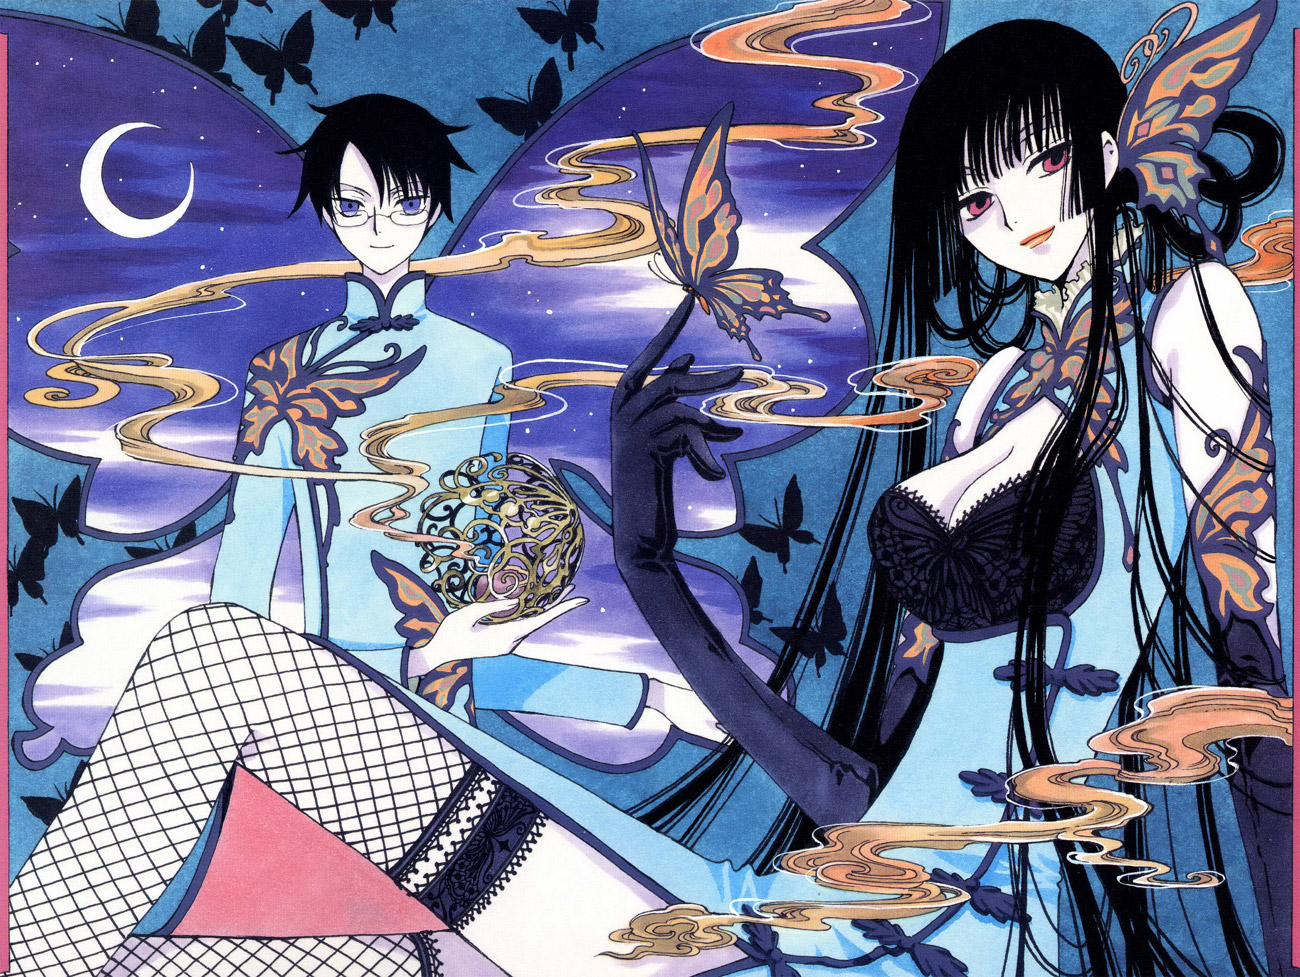 Clamp Calendar 2007 image by Clamp